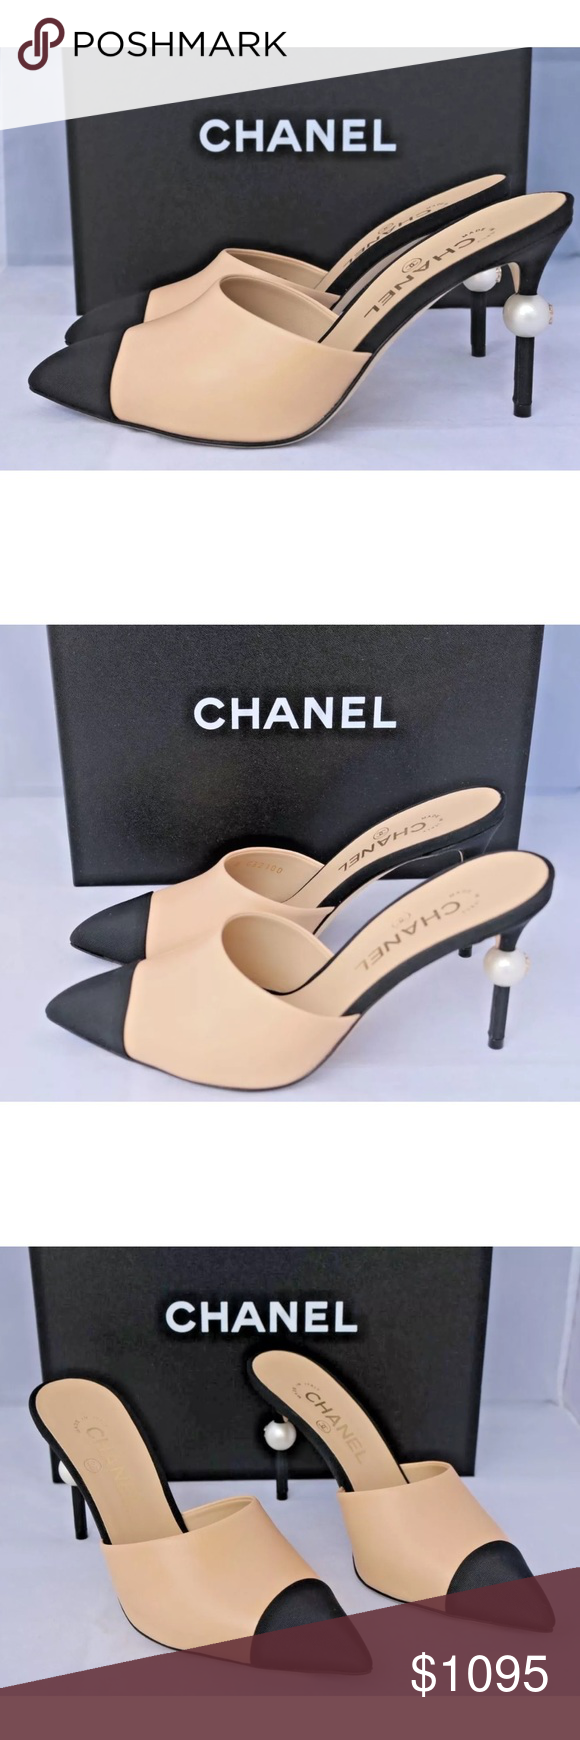 62e2f48c1 CHANEL BEIGE LEATHER SLIDES MULES SHOES PEARL NIB $1.1K 2016 CHANEL RUNWAY  BEIGE BLACK LEATHER